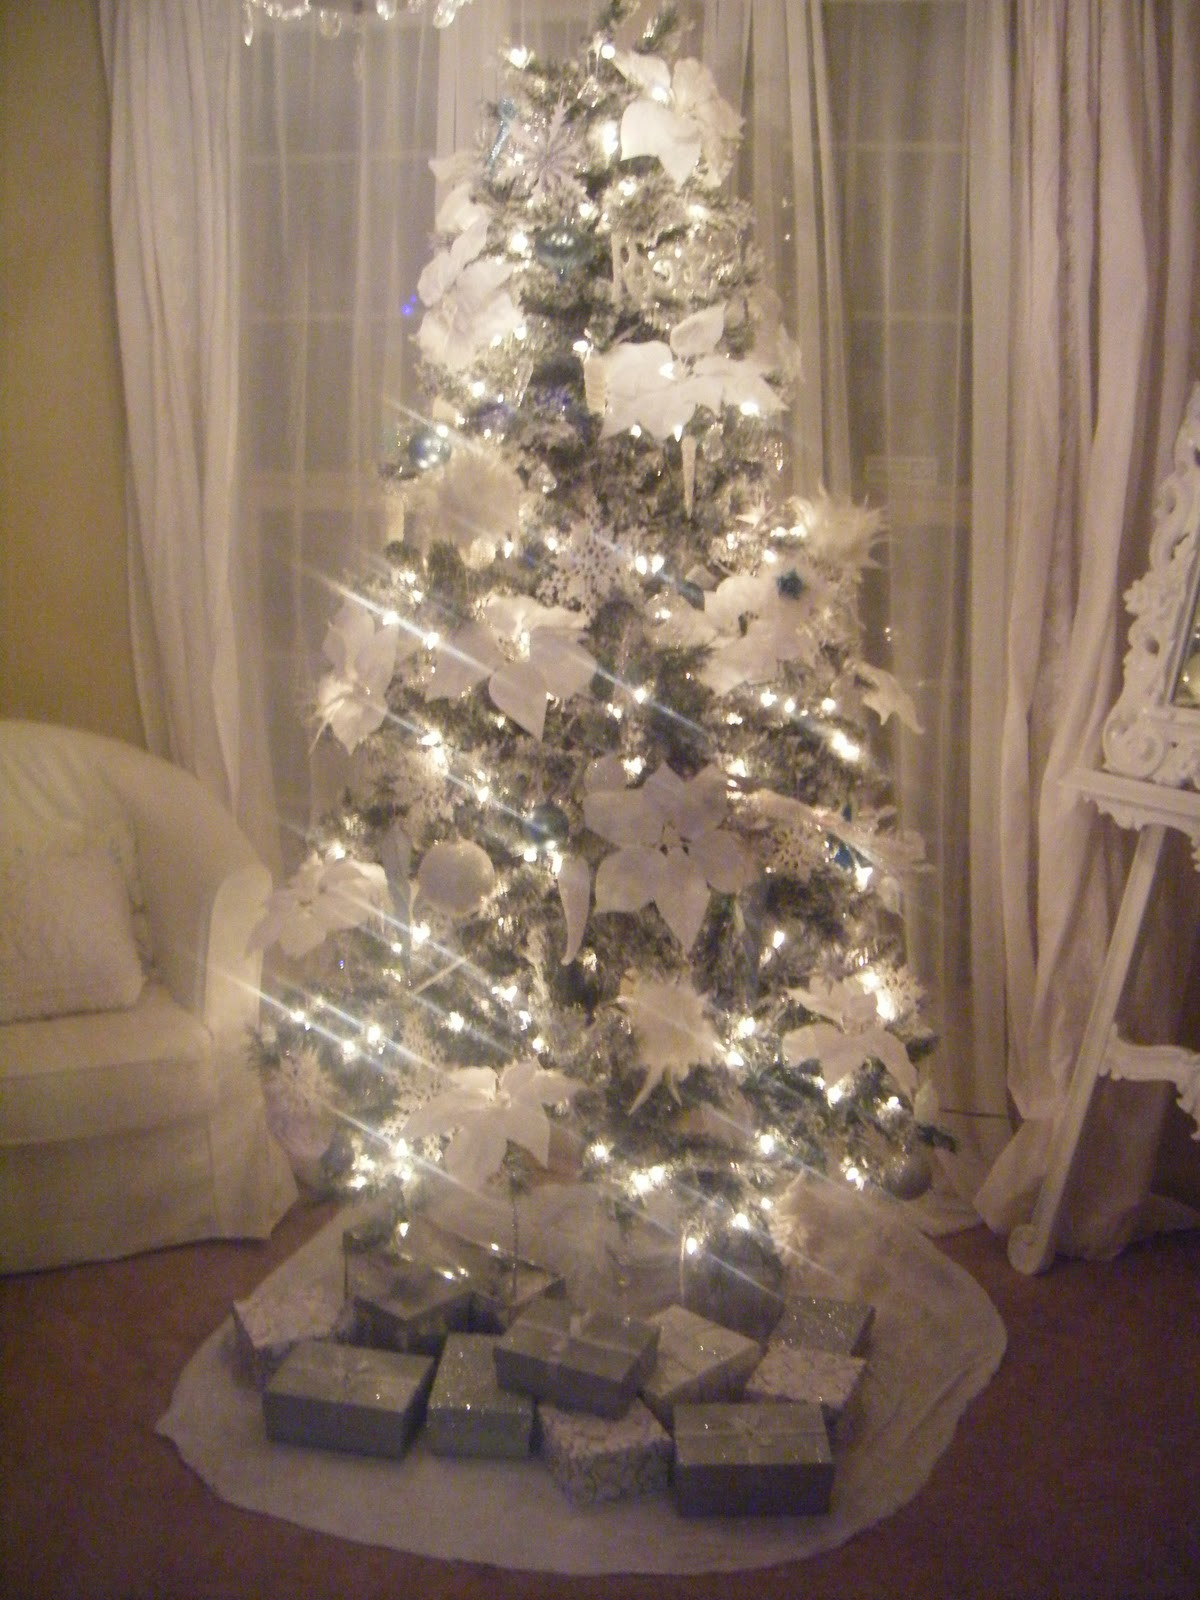 Best ideas about Shabby Chic Christmas Tree . Save or Pin Not So Shabby Shabby Chic My Christmas Tree 2011 Now.